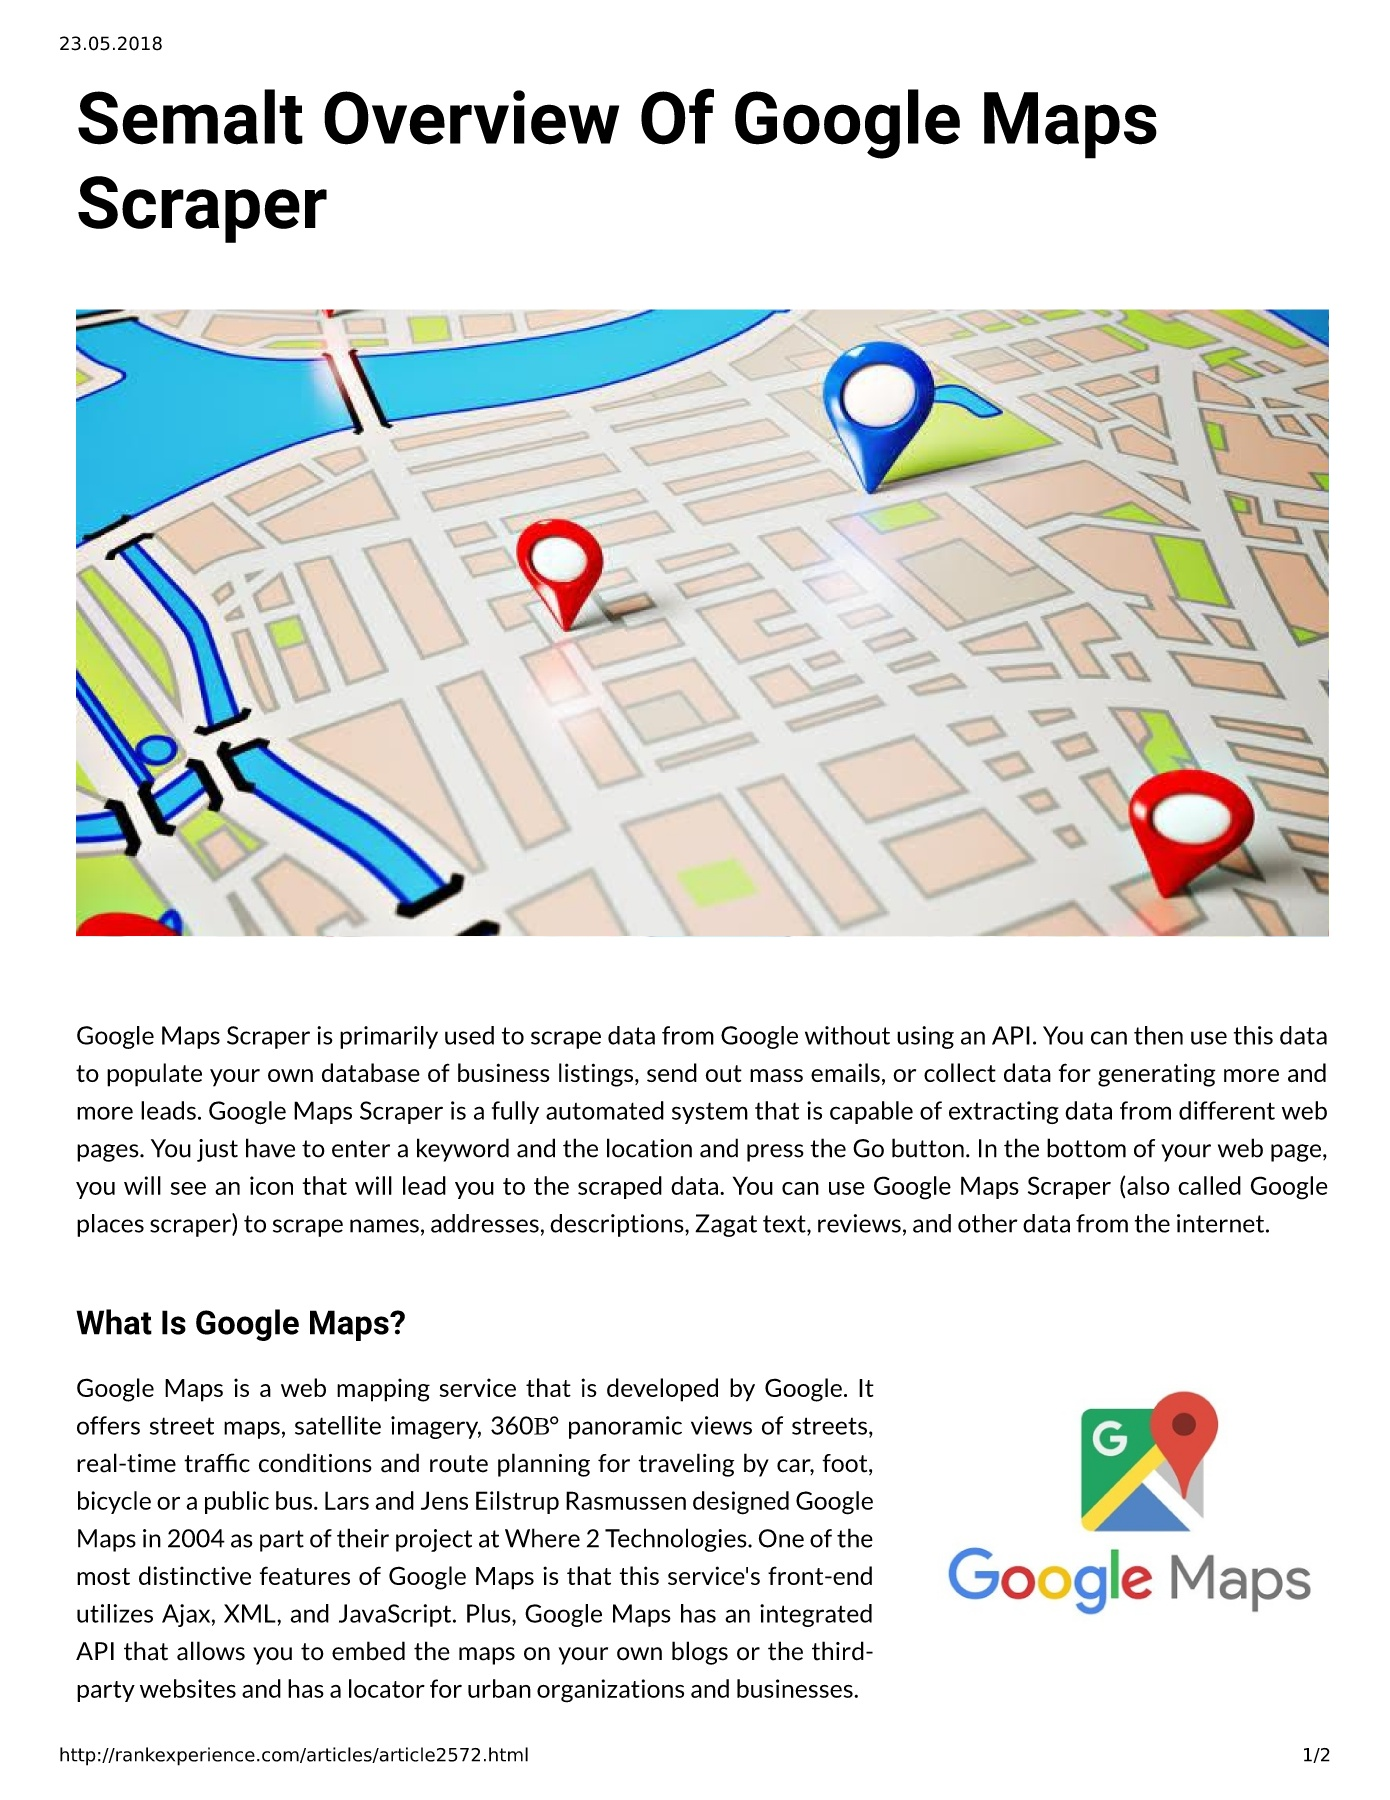 Semalt Overview Of Google Maps Scraper